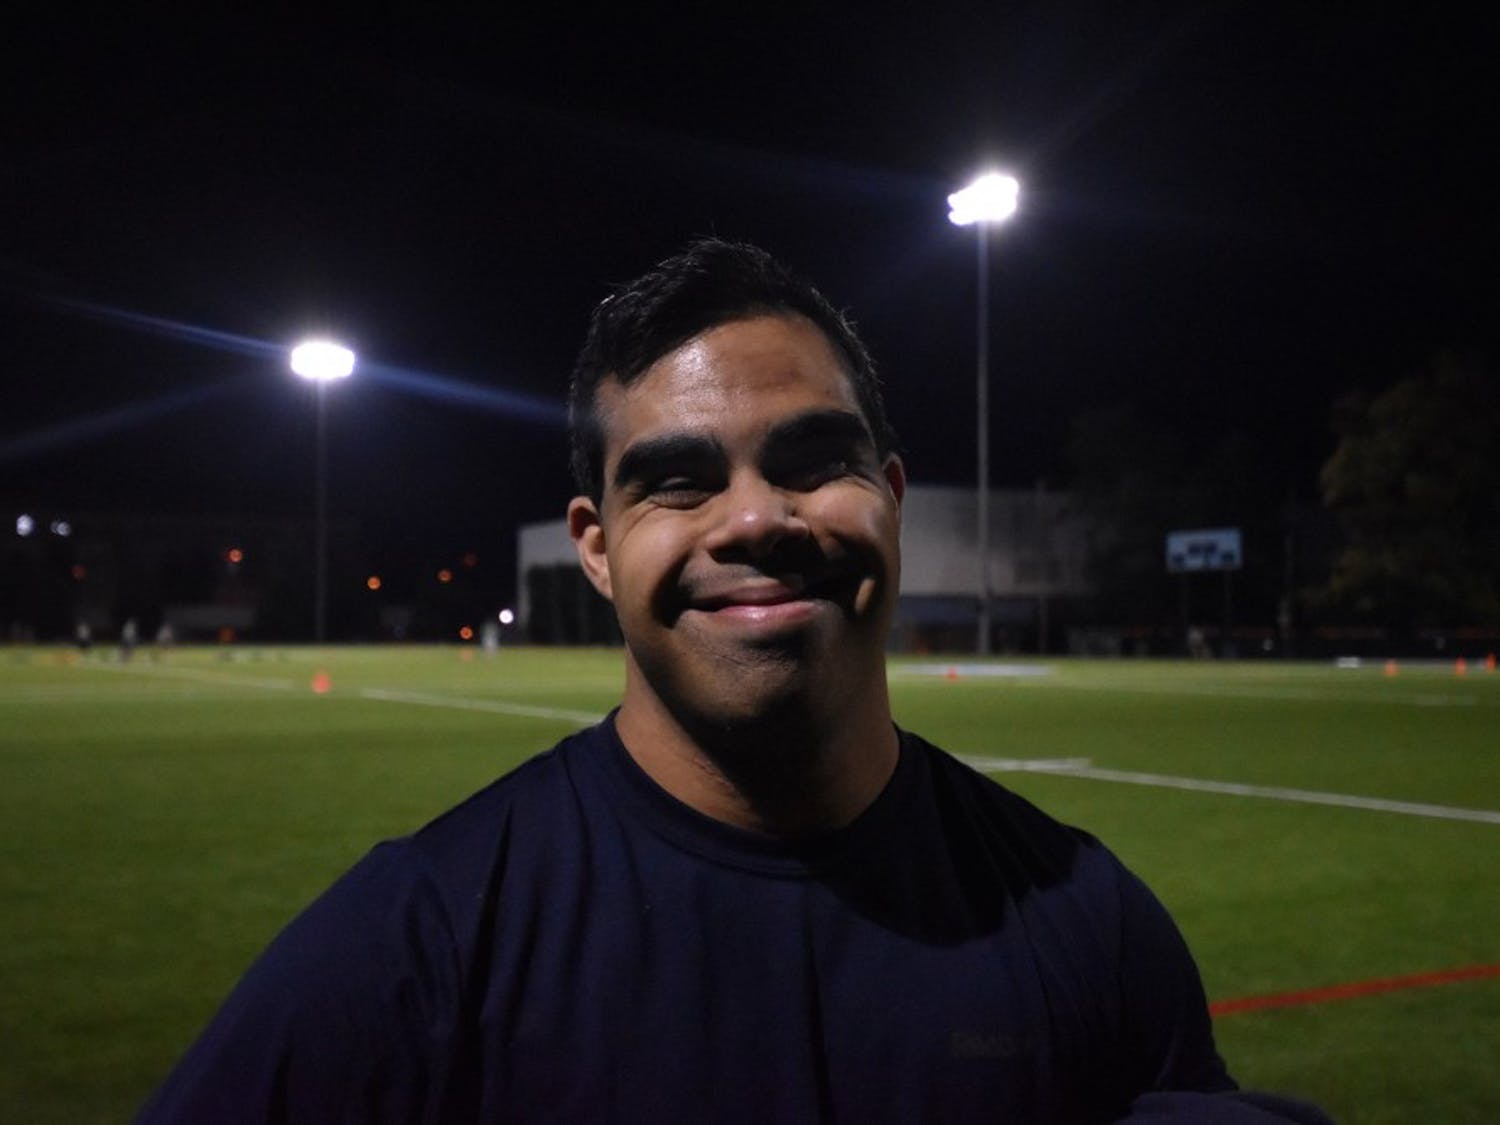 Ishan Munshi is part of the  Best Buddies program, which pairs community members with disabilities to students at Carolina. Ishan recently started his new job at Cafe Carolina.